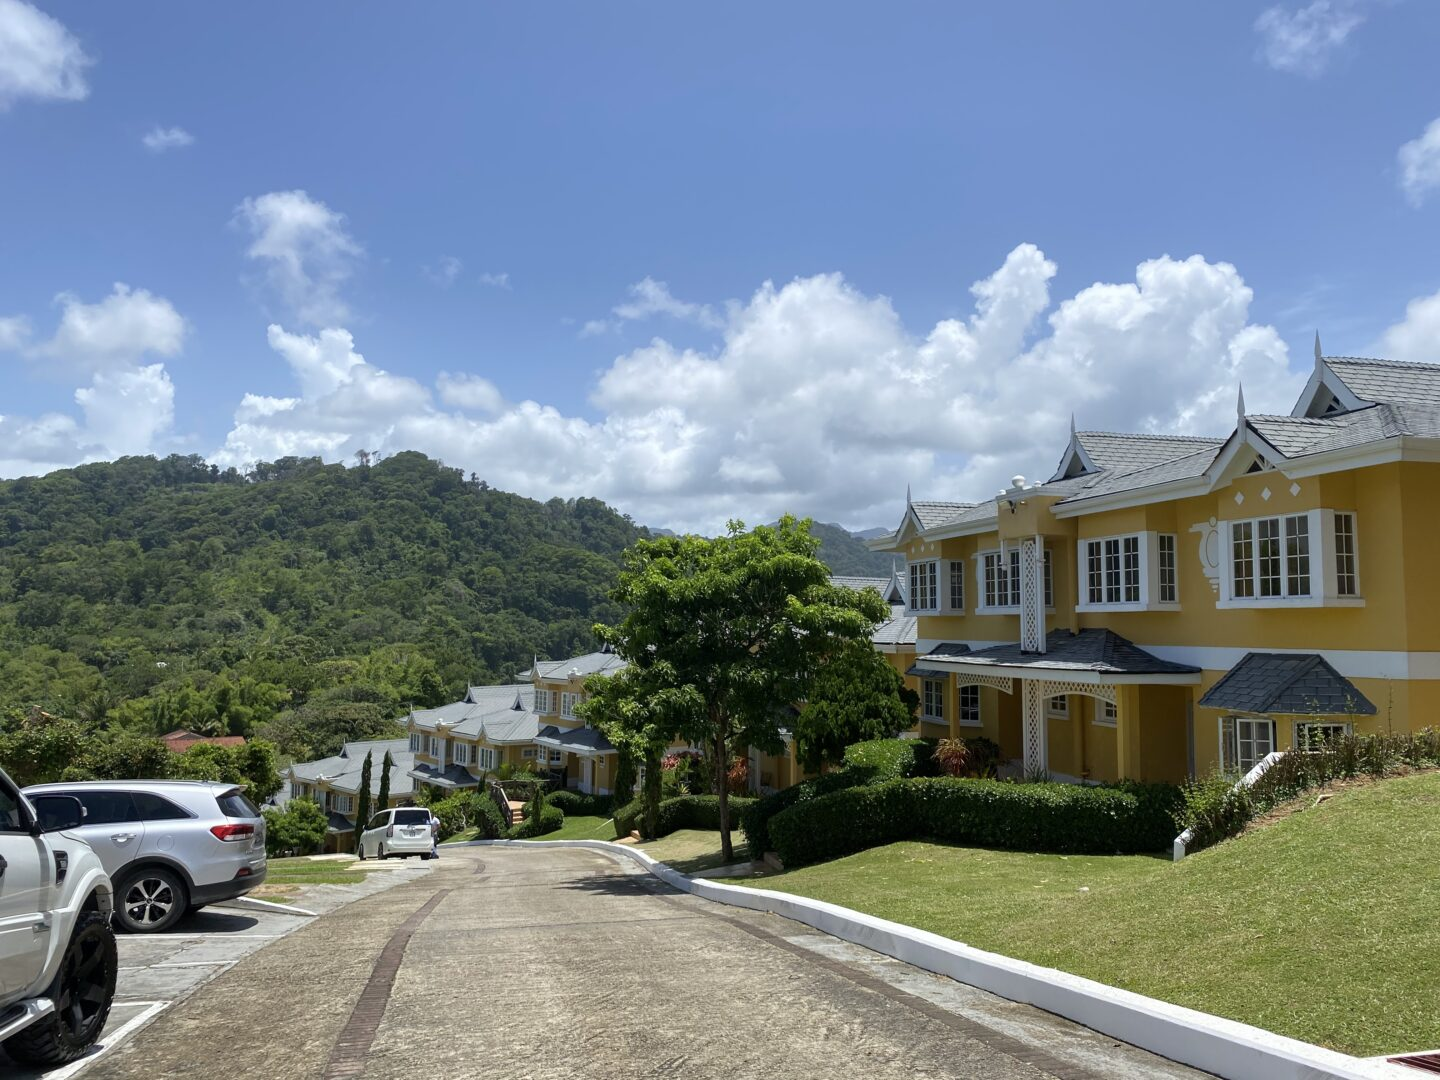 3 BEDROOM, 2 AND 1/2 BATHROOM TOWNHOUSE FOR SALE-CHUPARA VILLAS